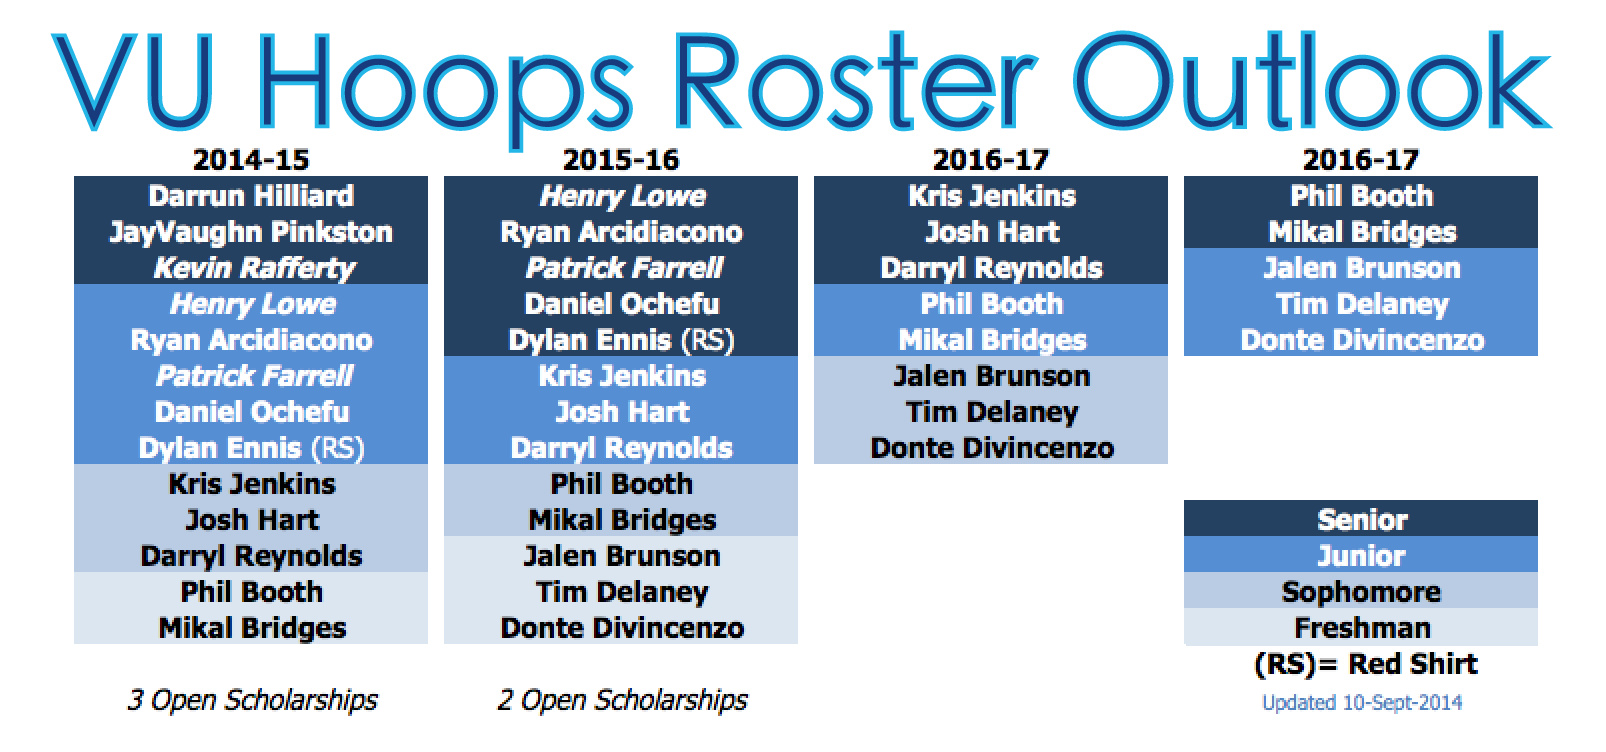 Roster_outlook